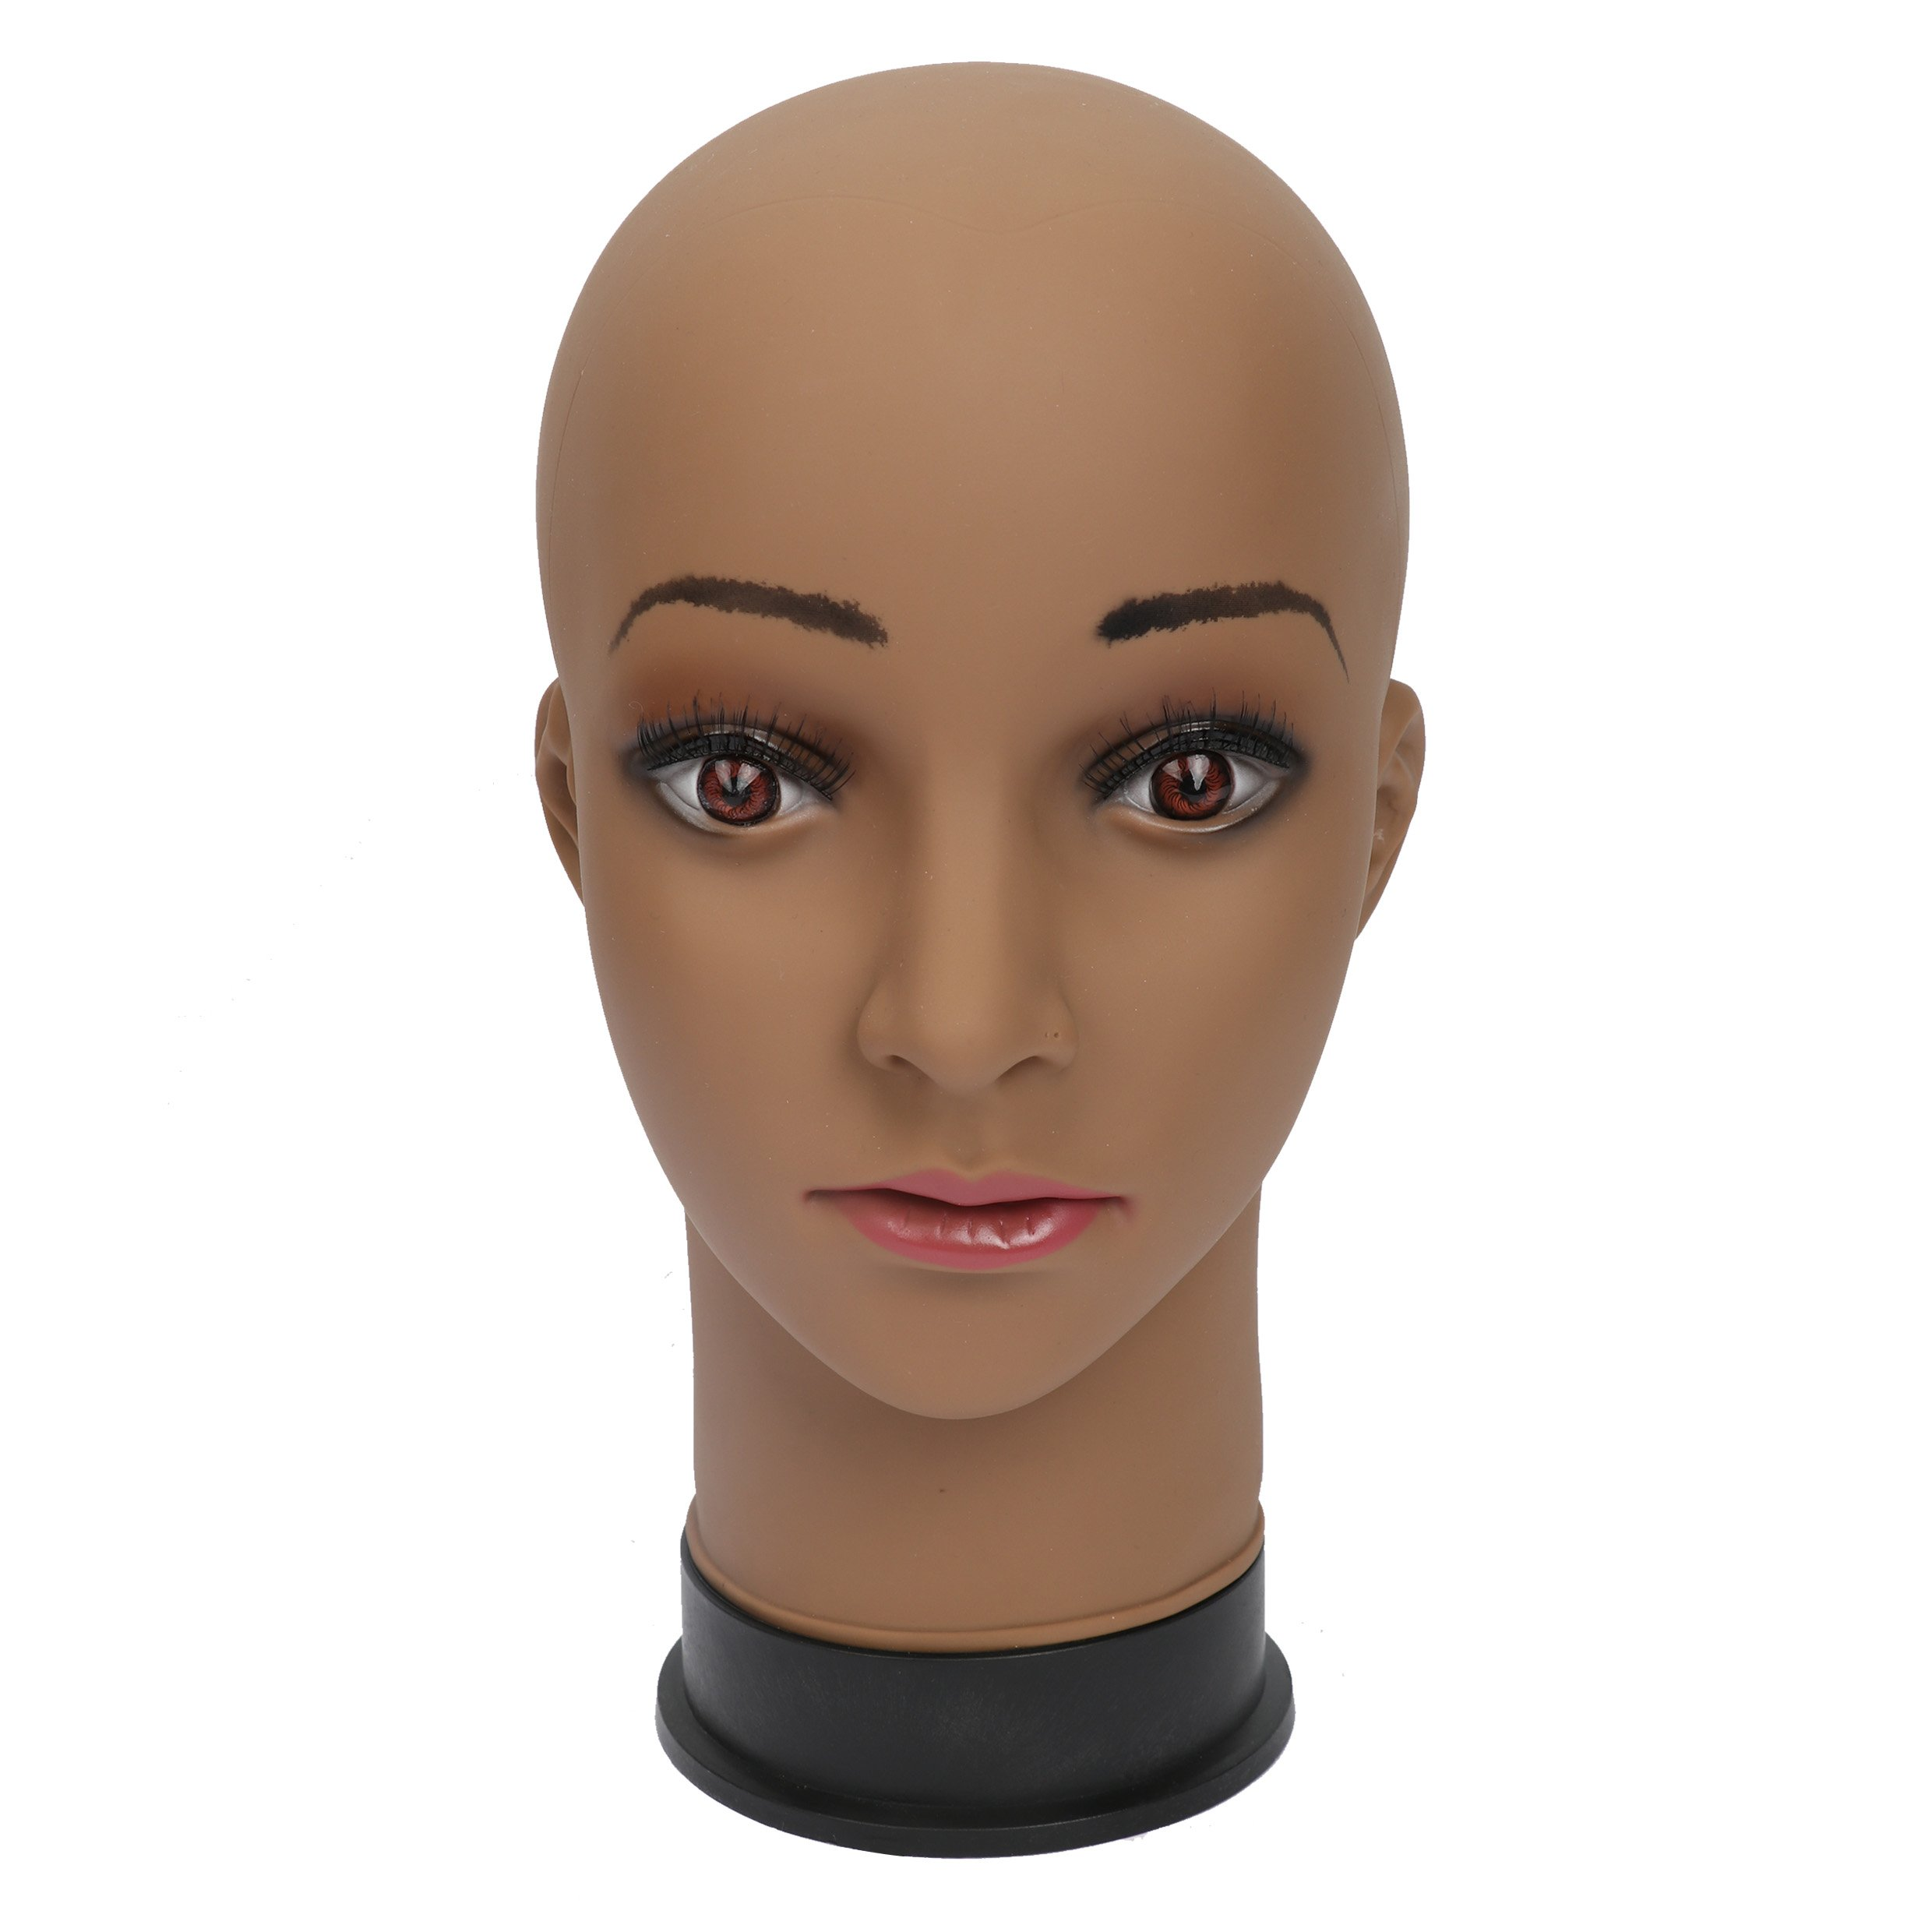 BHD BEAUTY Bald Mannequin Head Brown Female Professional Cosmetology for Wig Making, Display wigs, eyeglasses, hairs with T pins